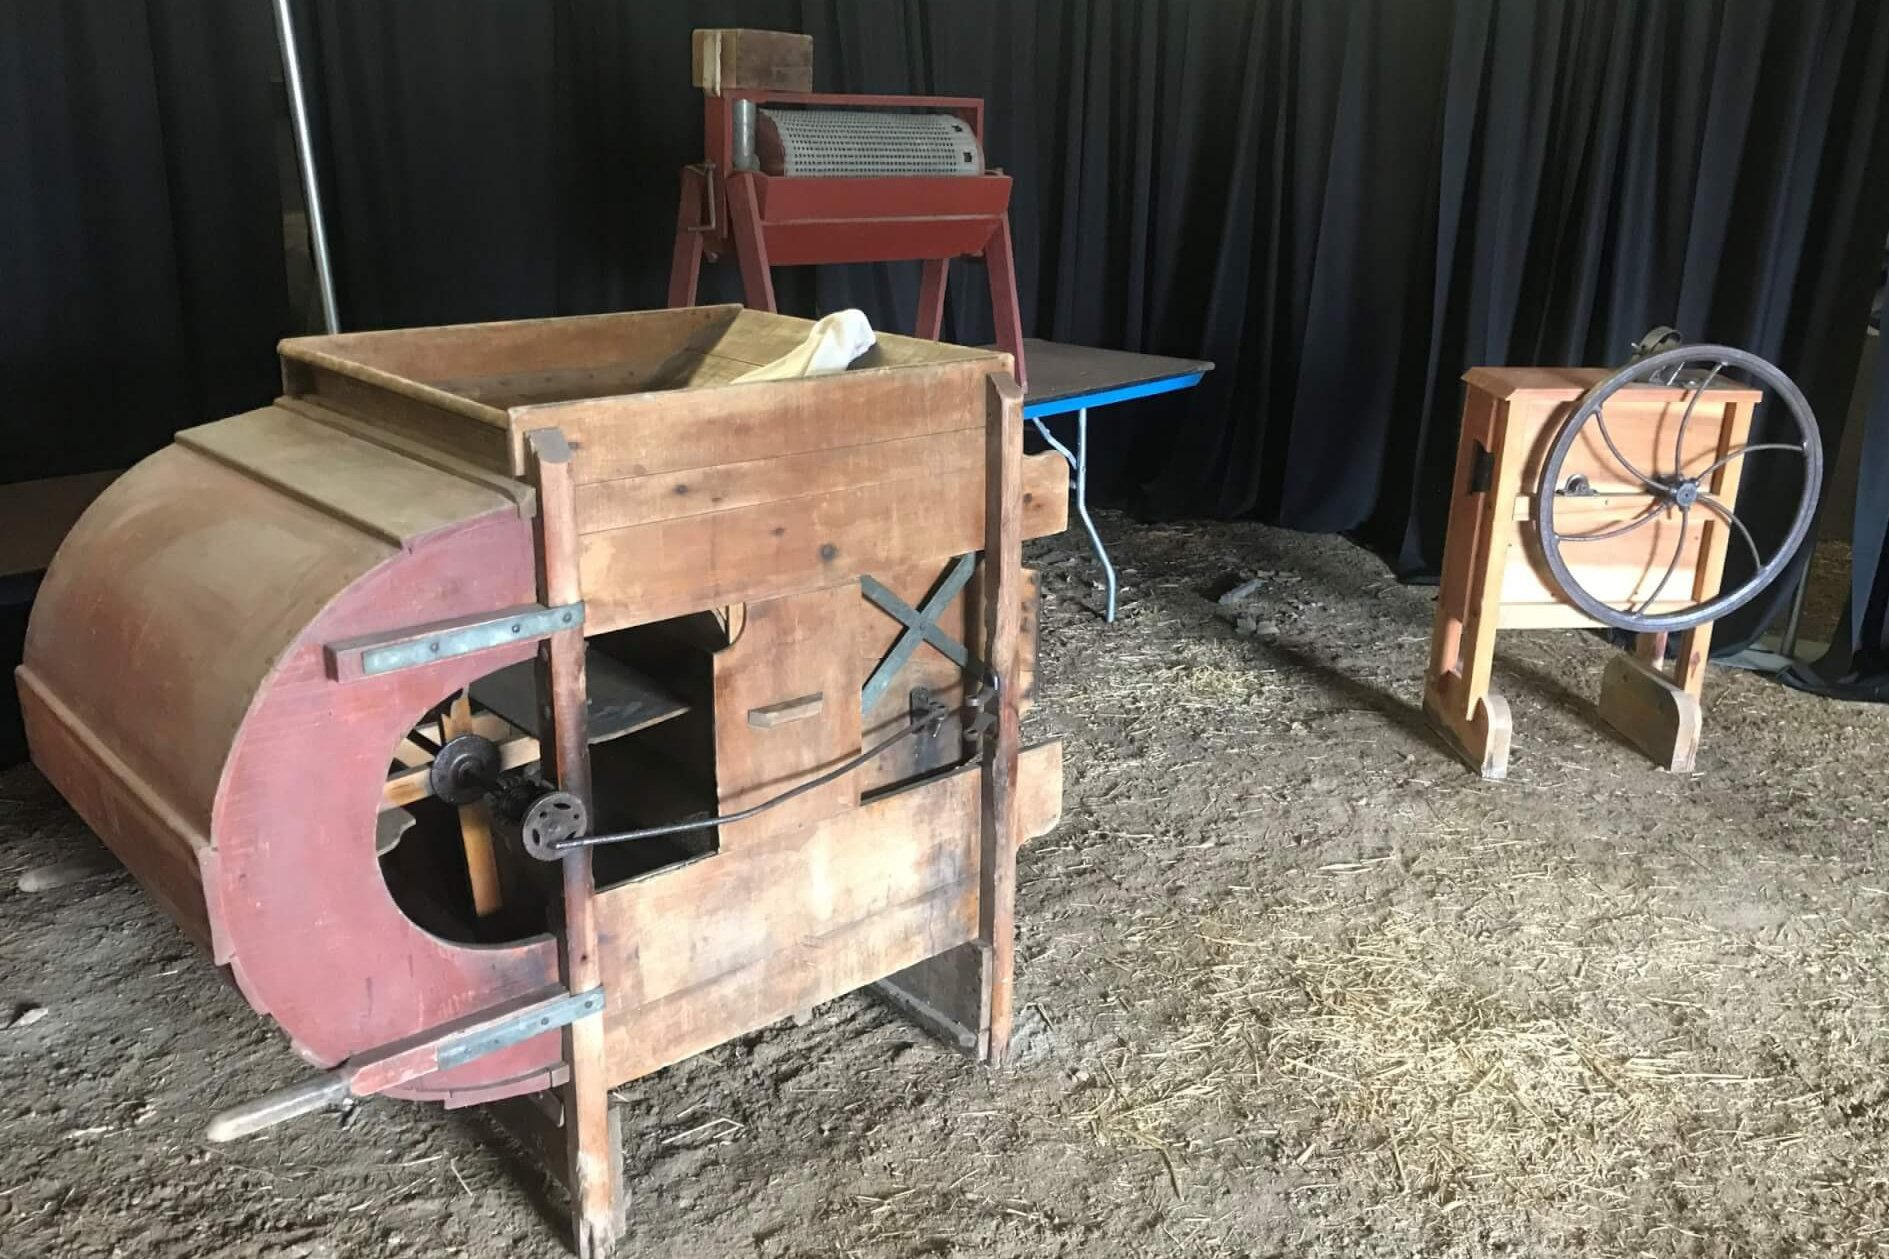 Original Soybean Seed Equiptment from Fouts farm